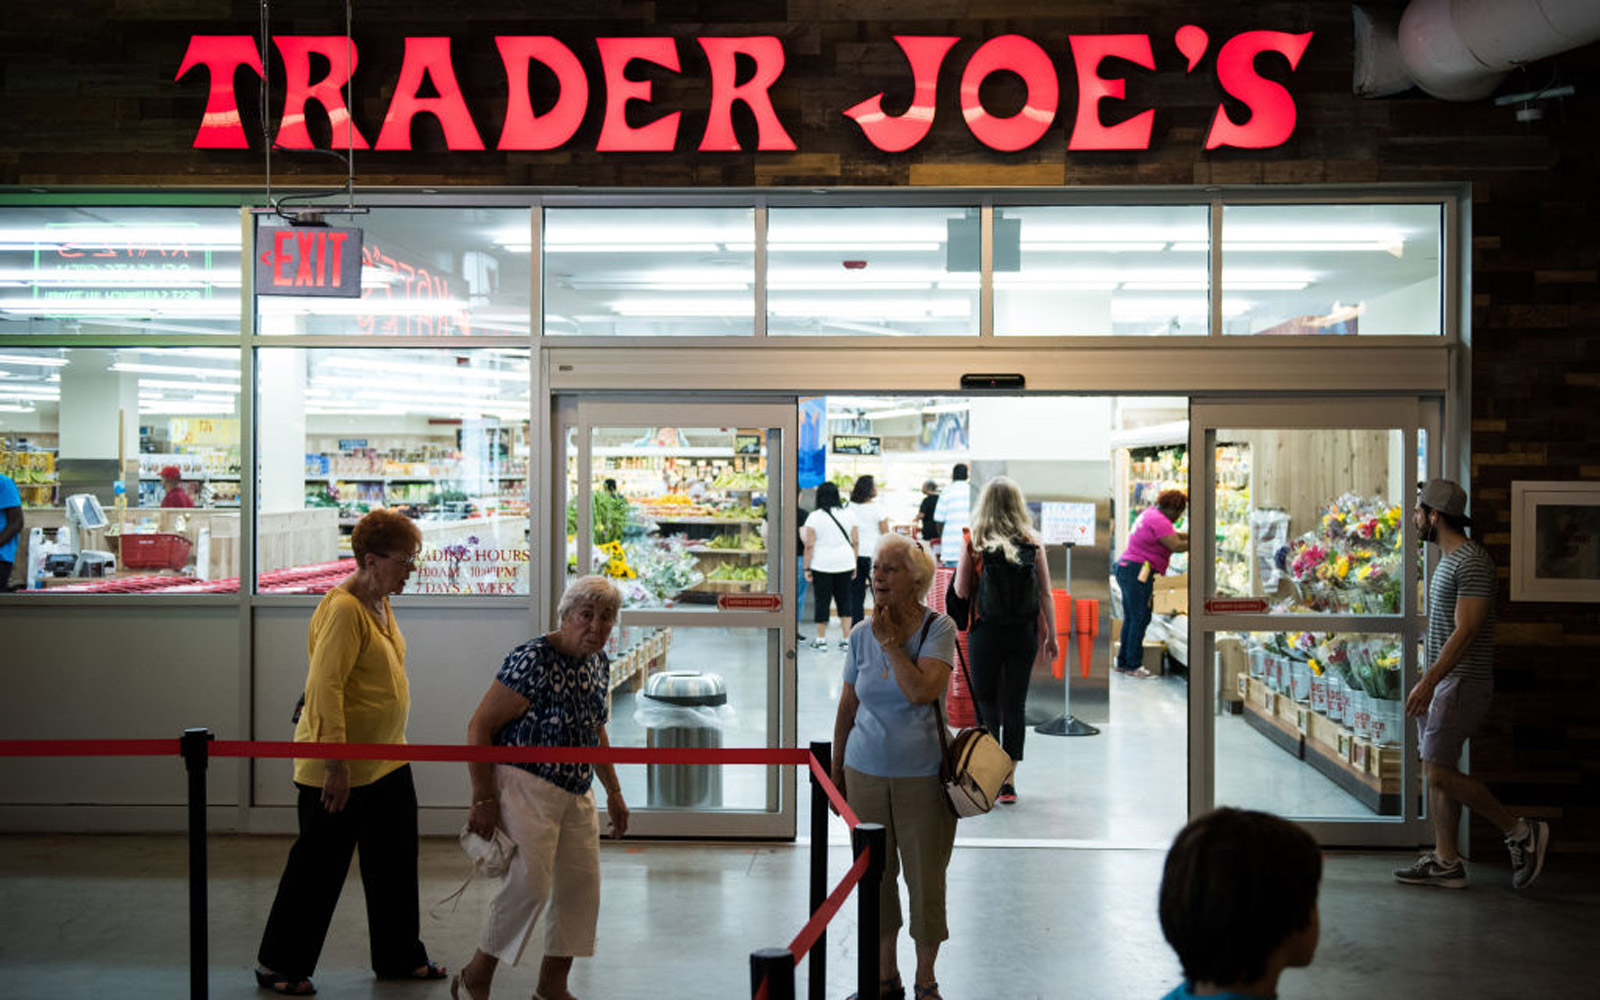 These Are the 50 Most Popular Trader Joe's Products of All Time